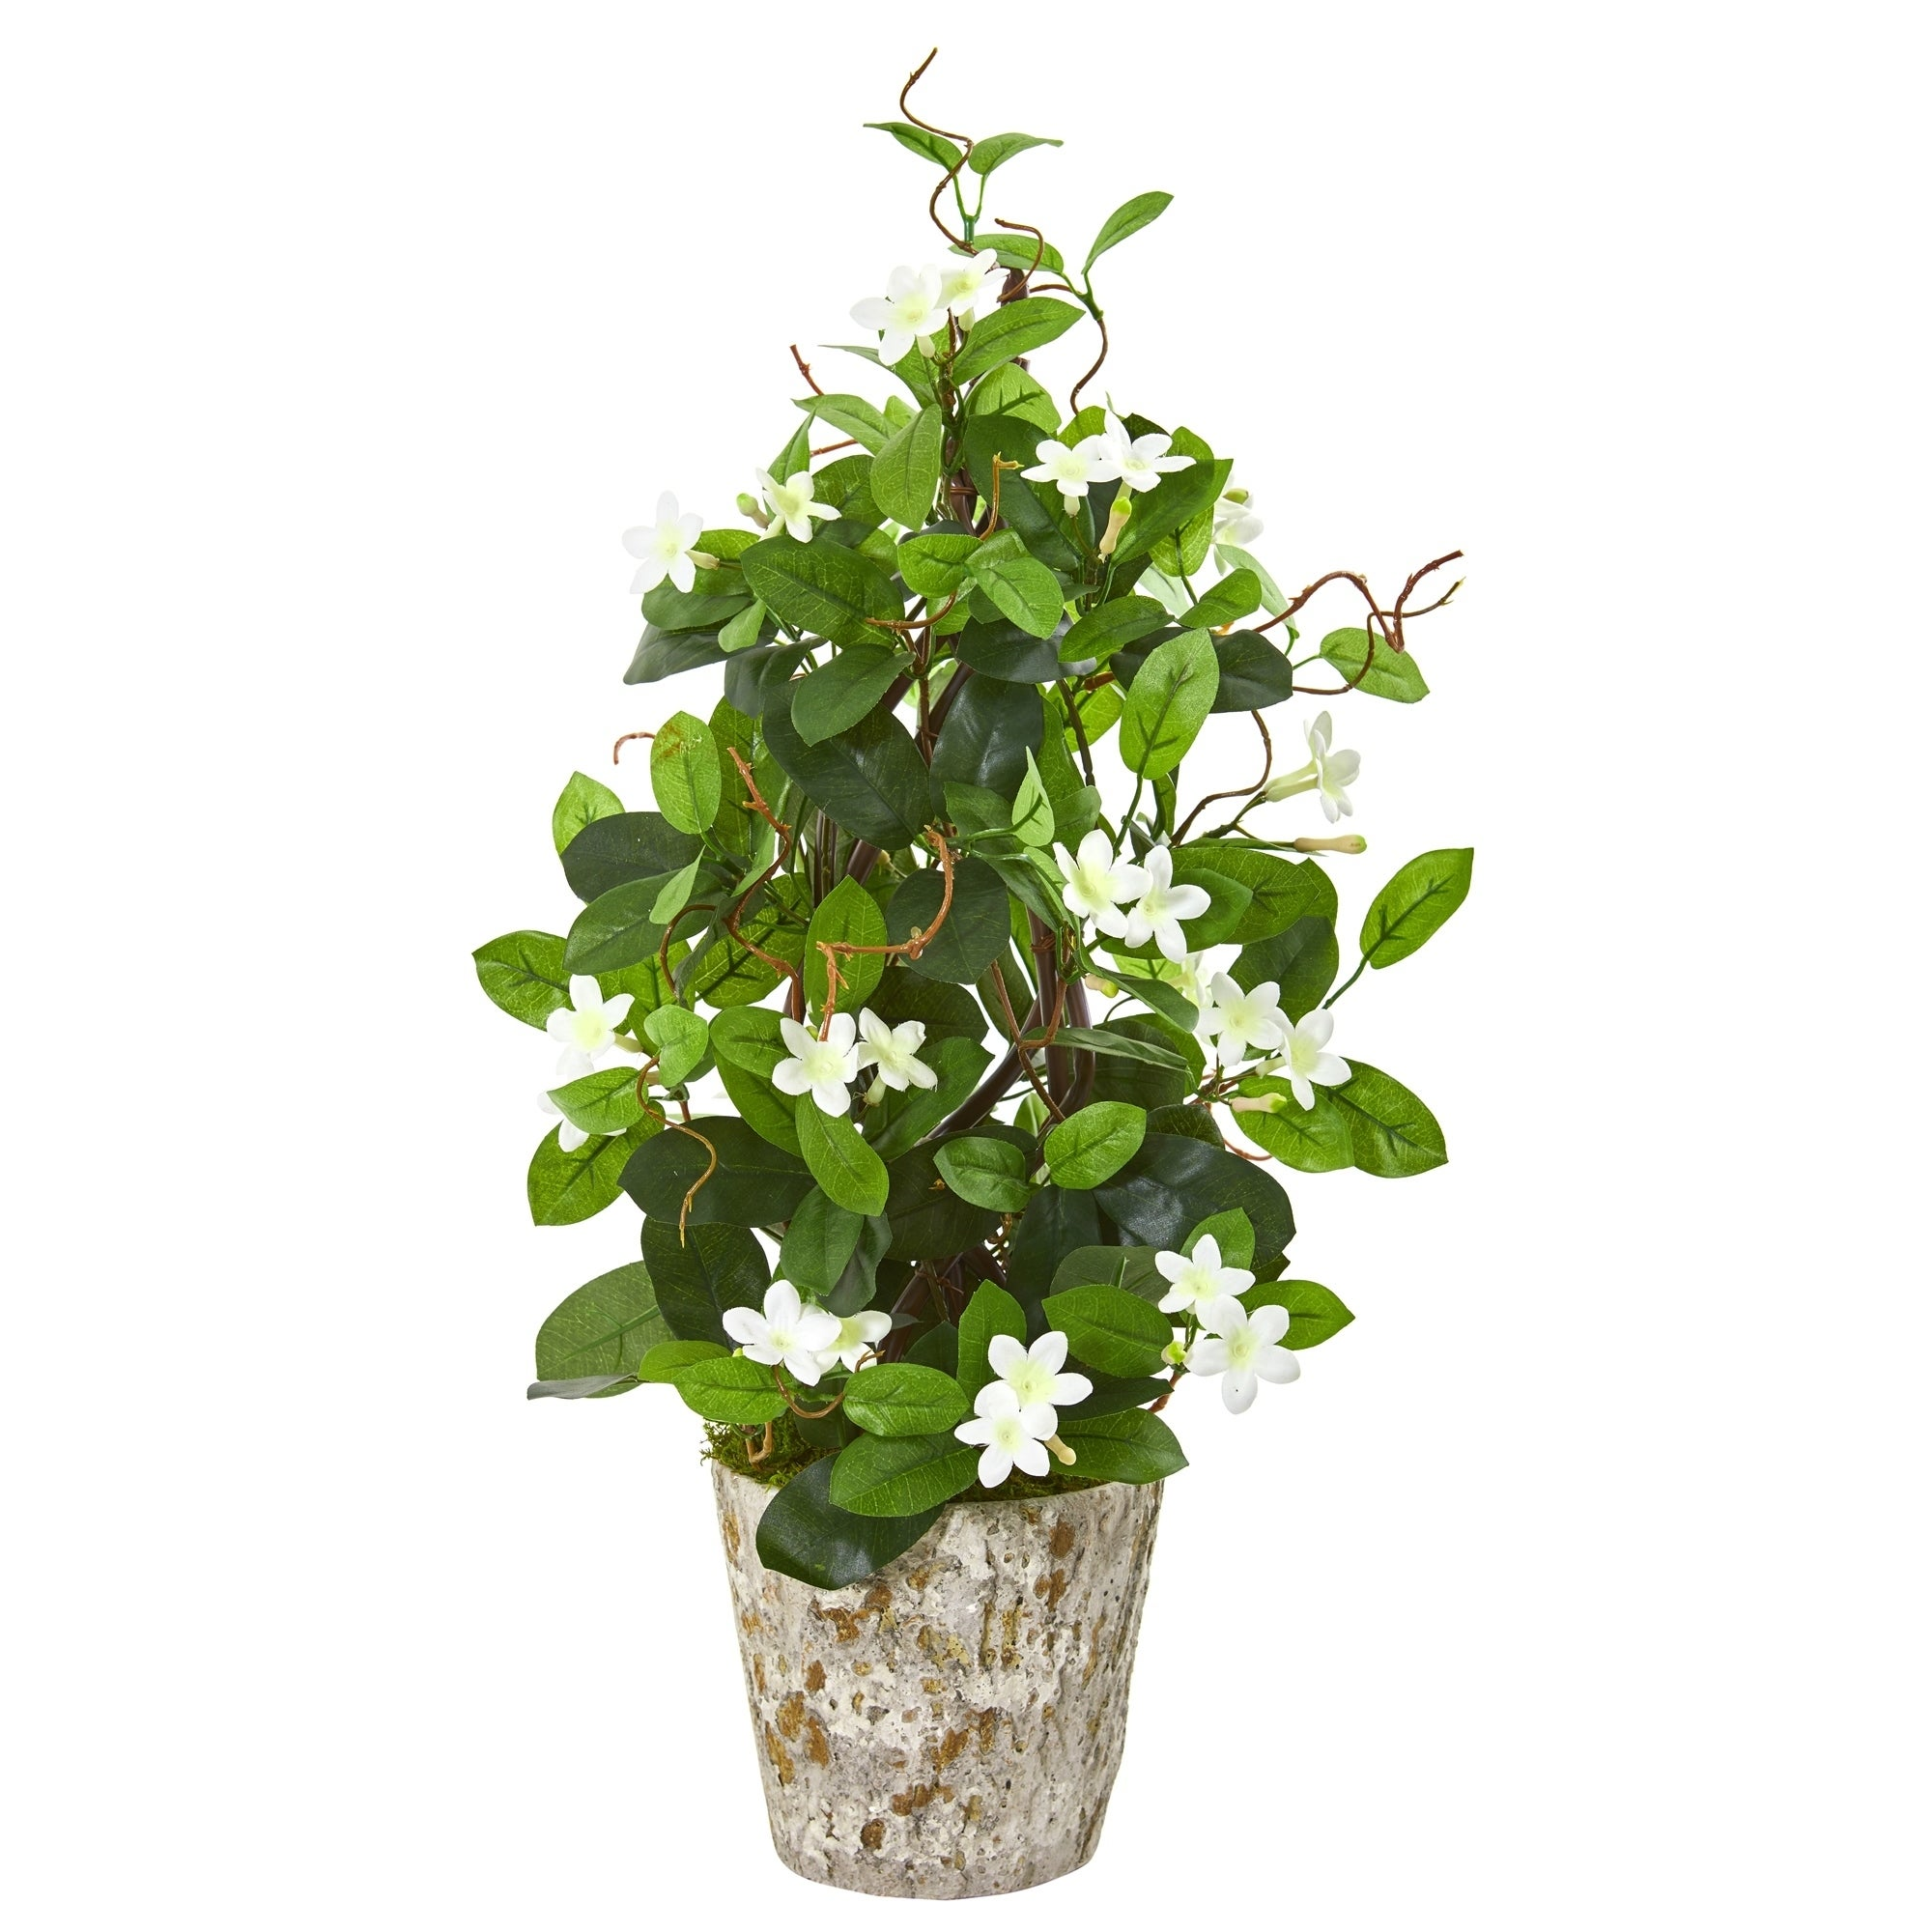 25 Stephanotis Artificial Climbing Plant in Weathered Planter